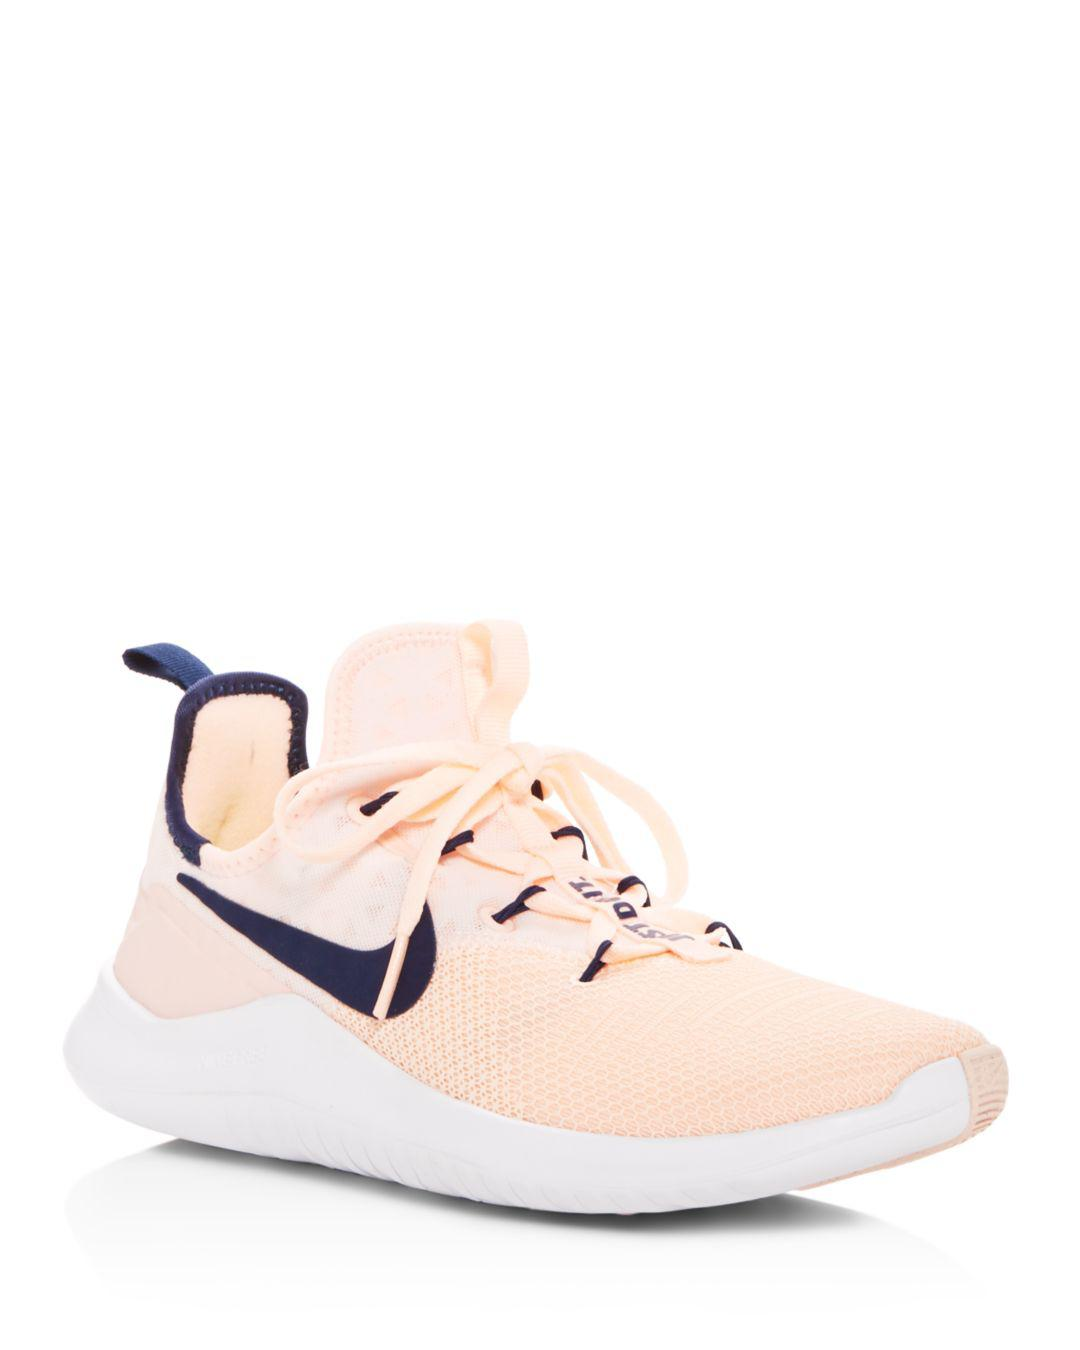 size 40 4bce4 99a0e Nike. Womens Free Tr 8 Lace Up Sneakers